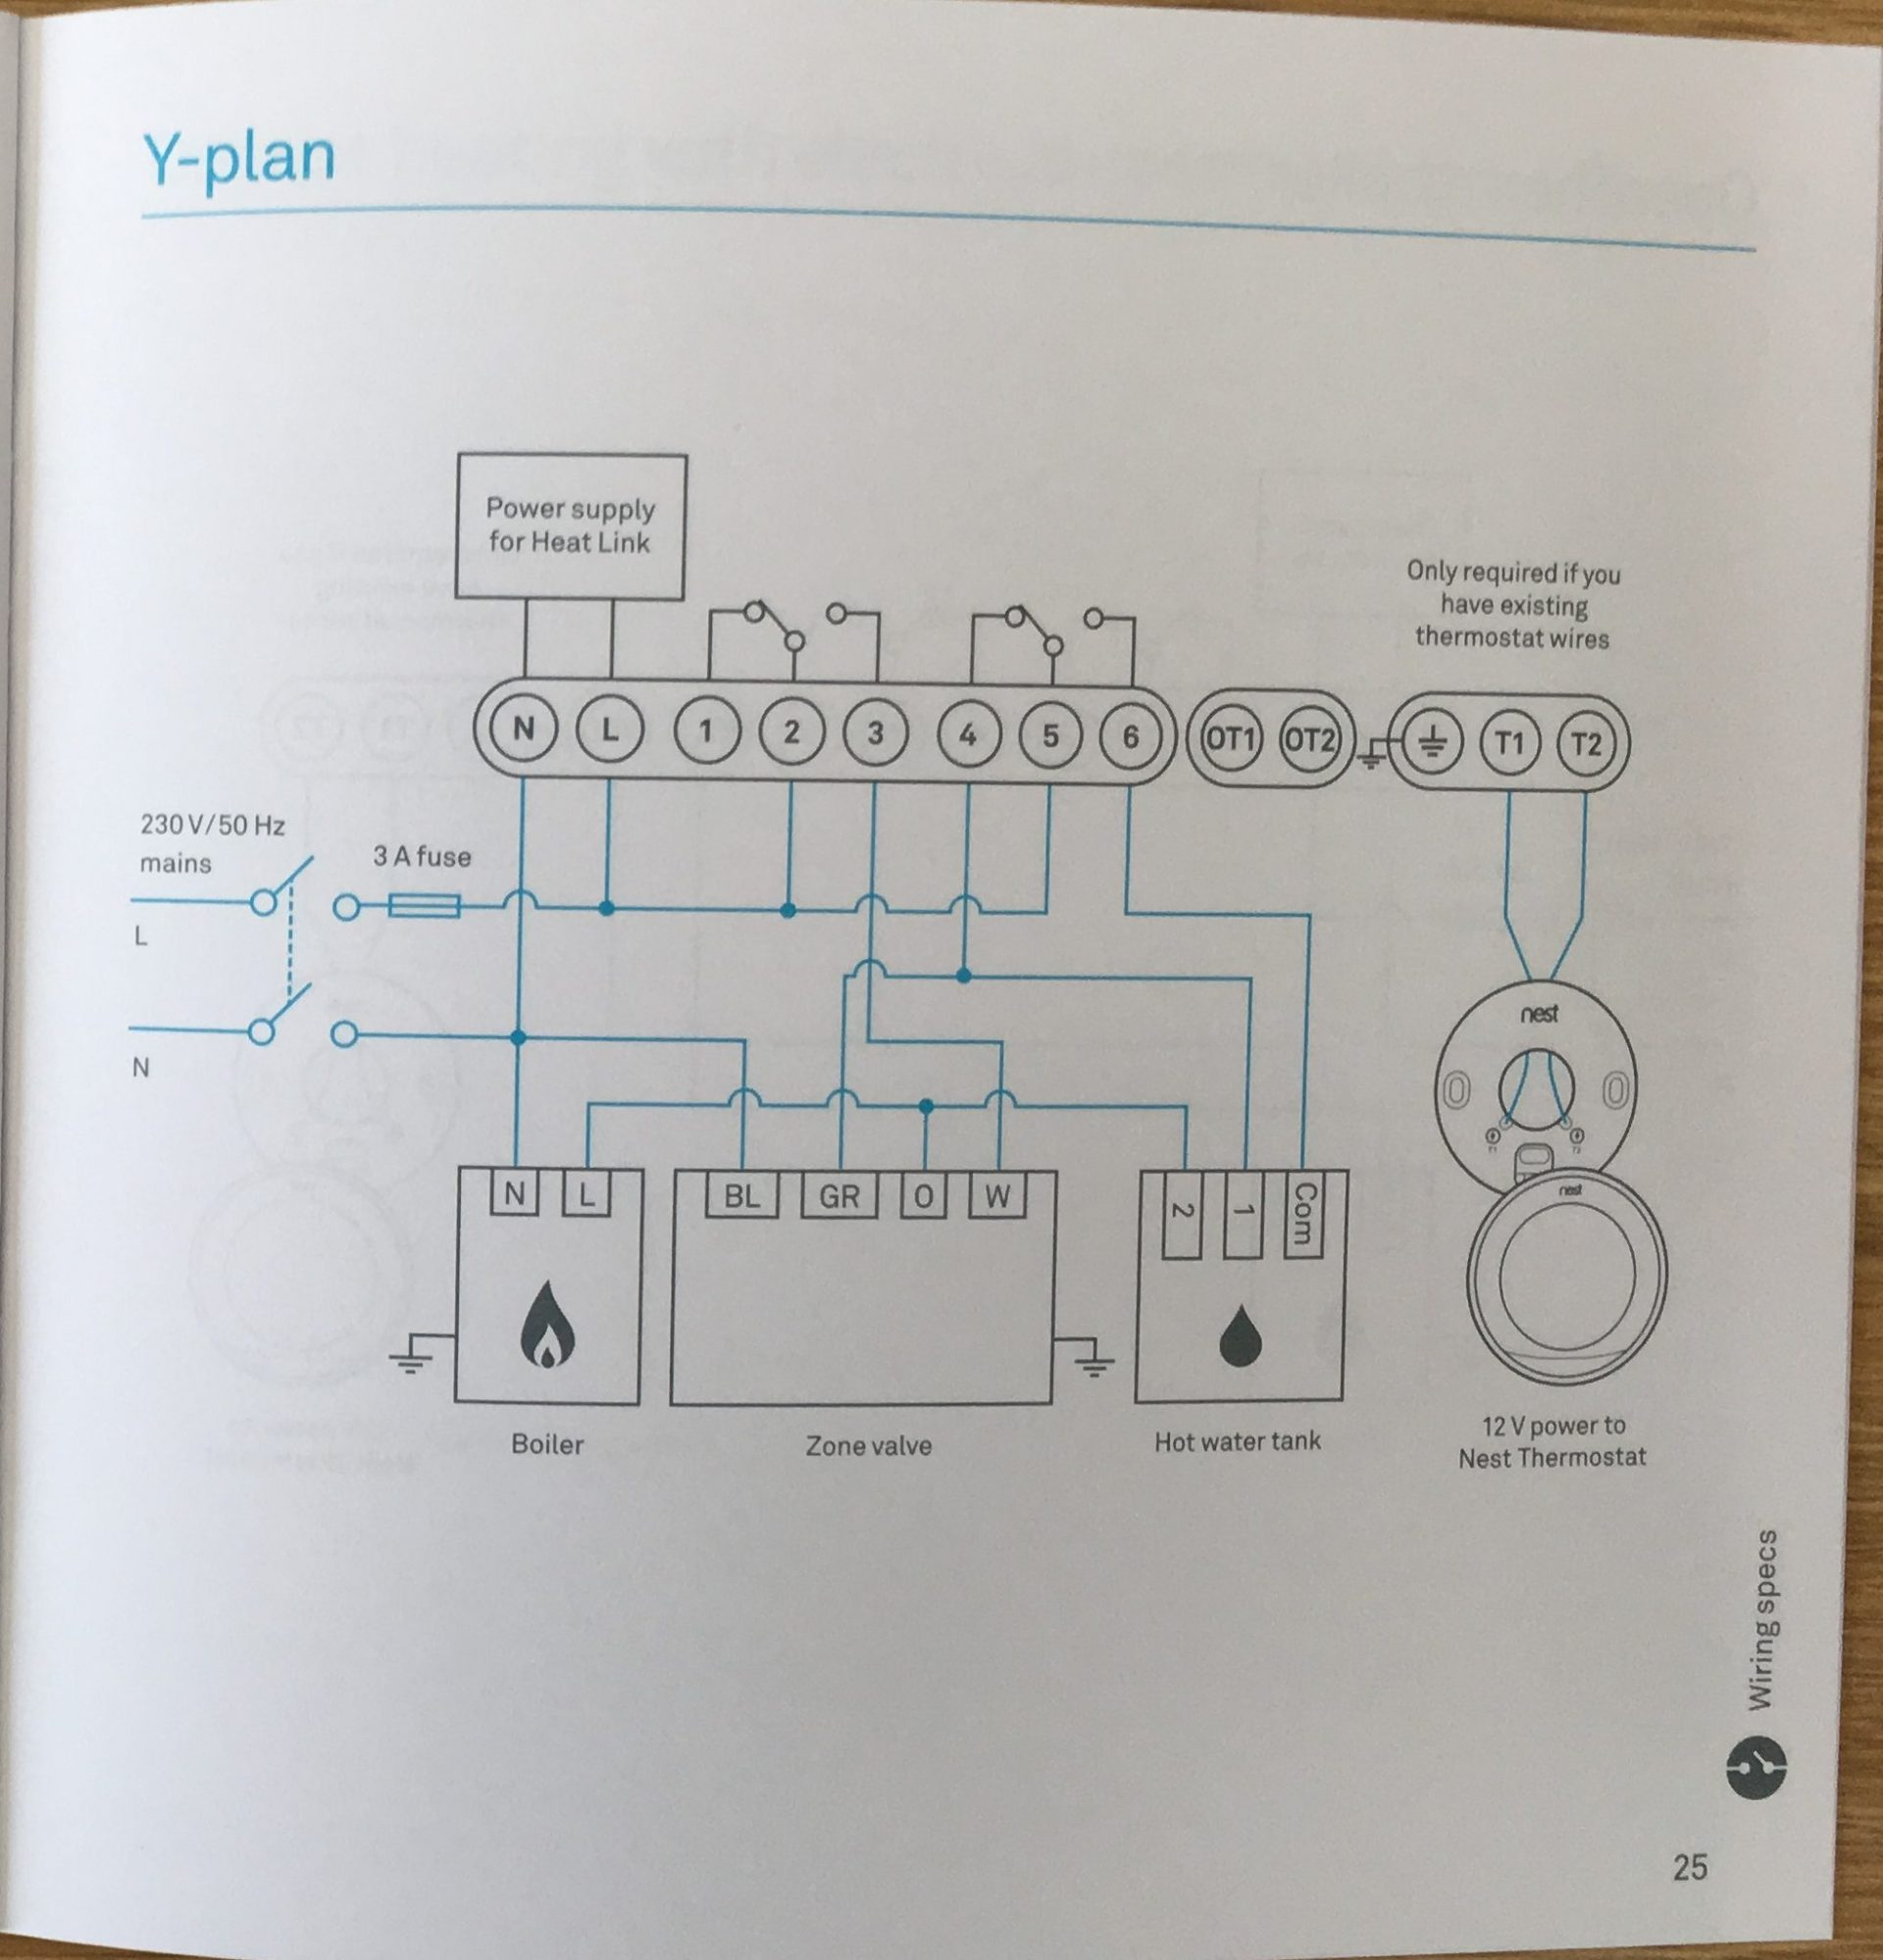 How To Install The Nest Learning Thermostat (3Rd Gen) In A Y-Plan - Nest First Generation Wiring Diagram